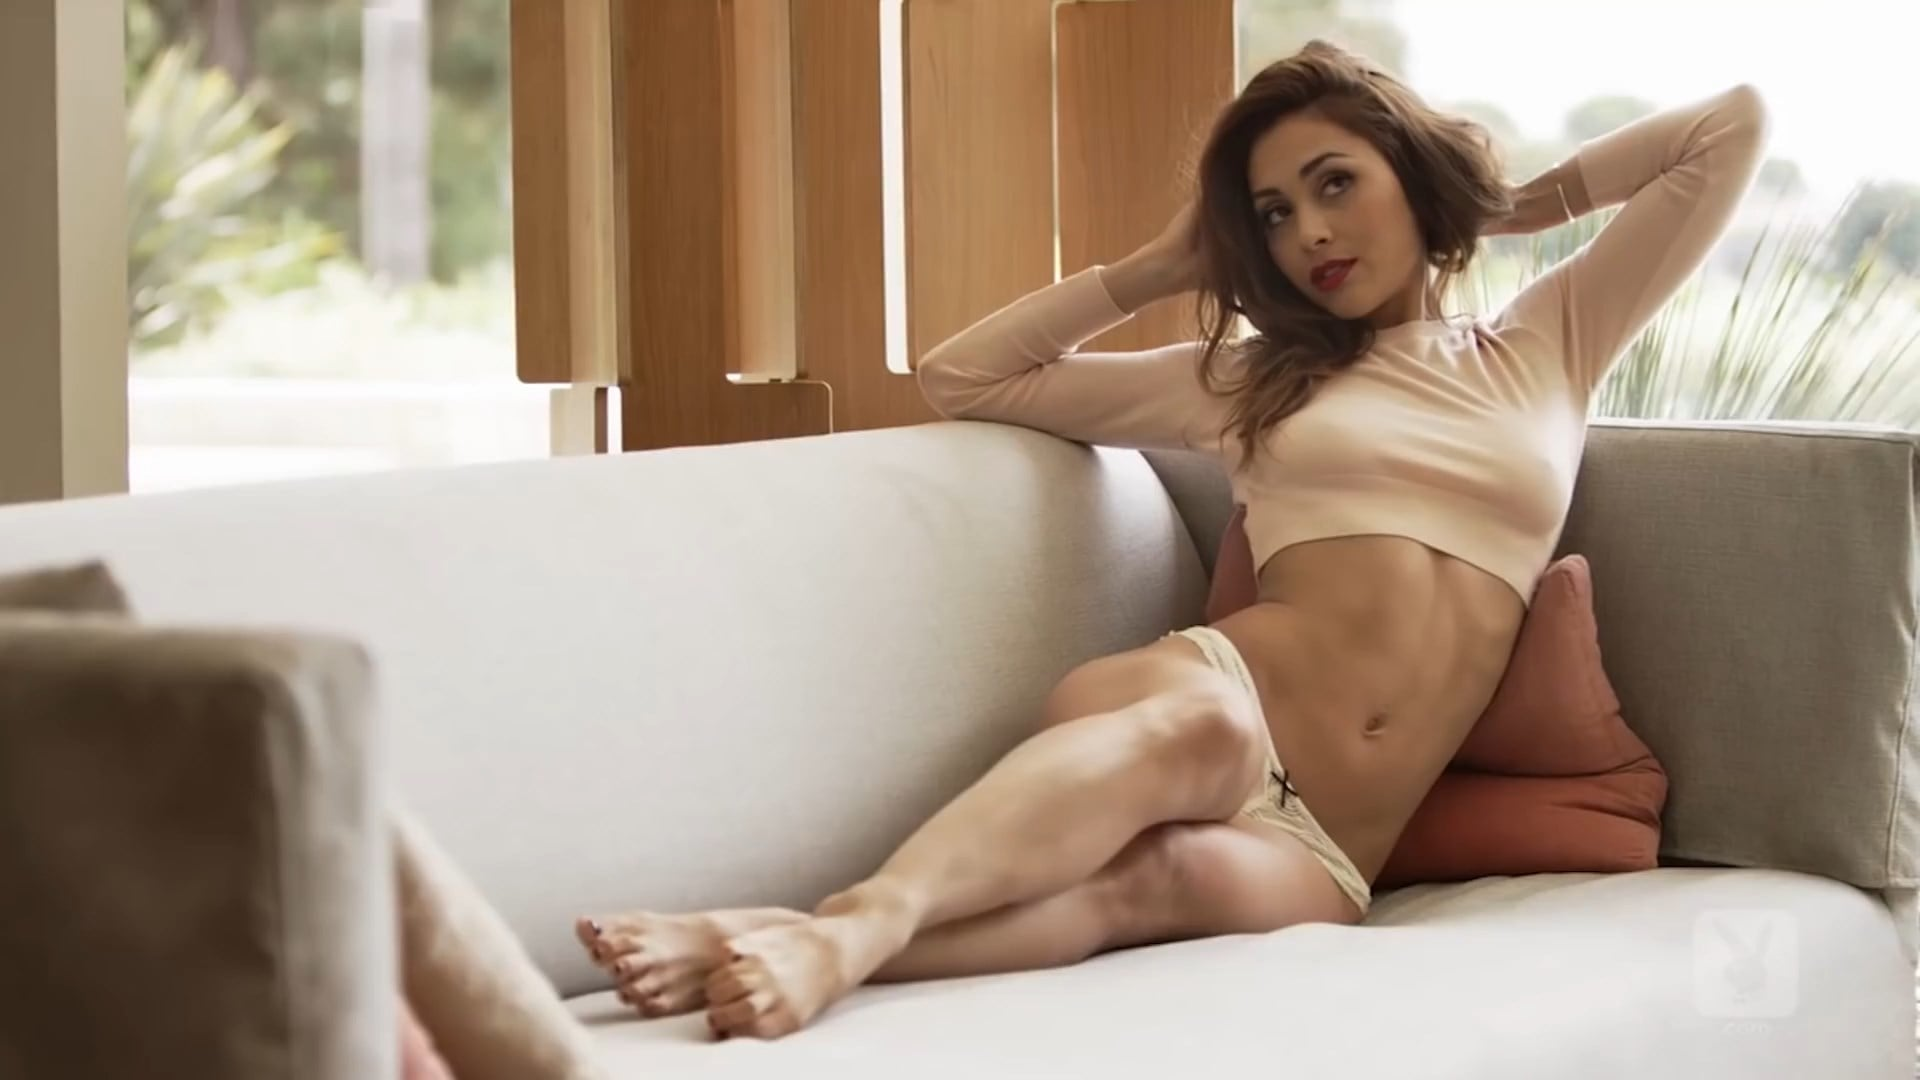 Lindsey morgan hot